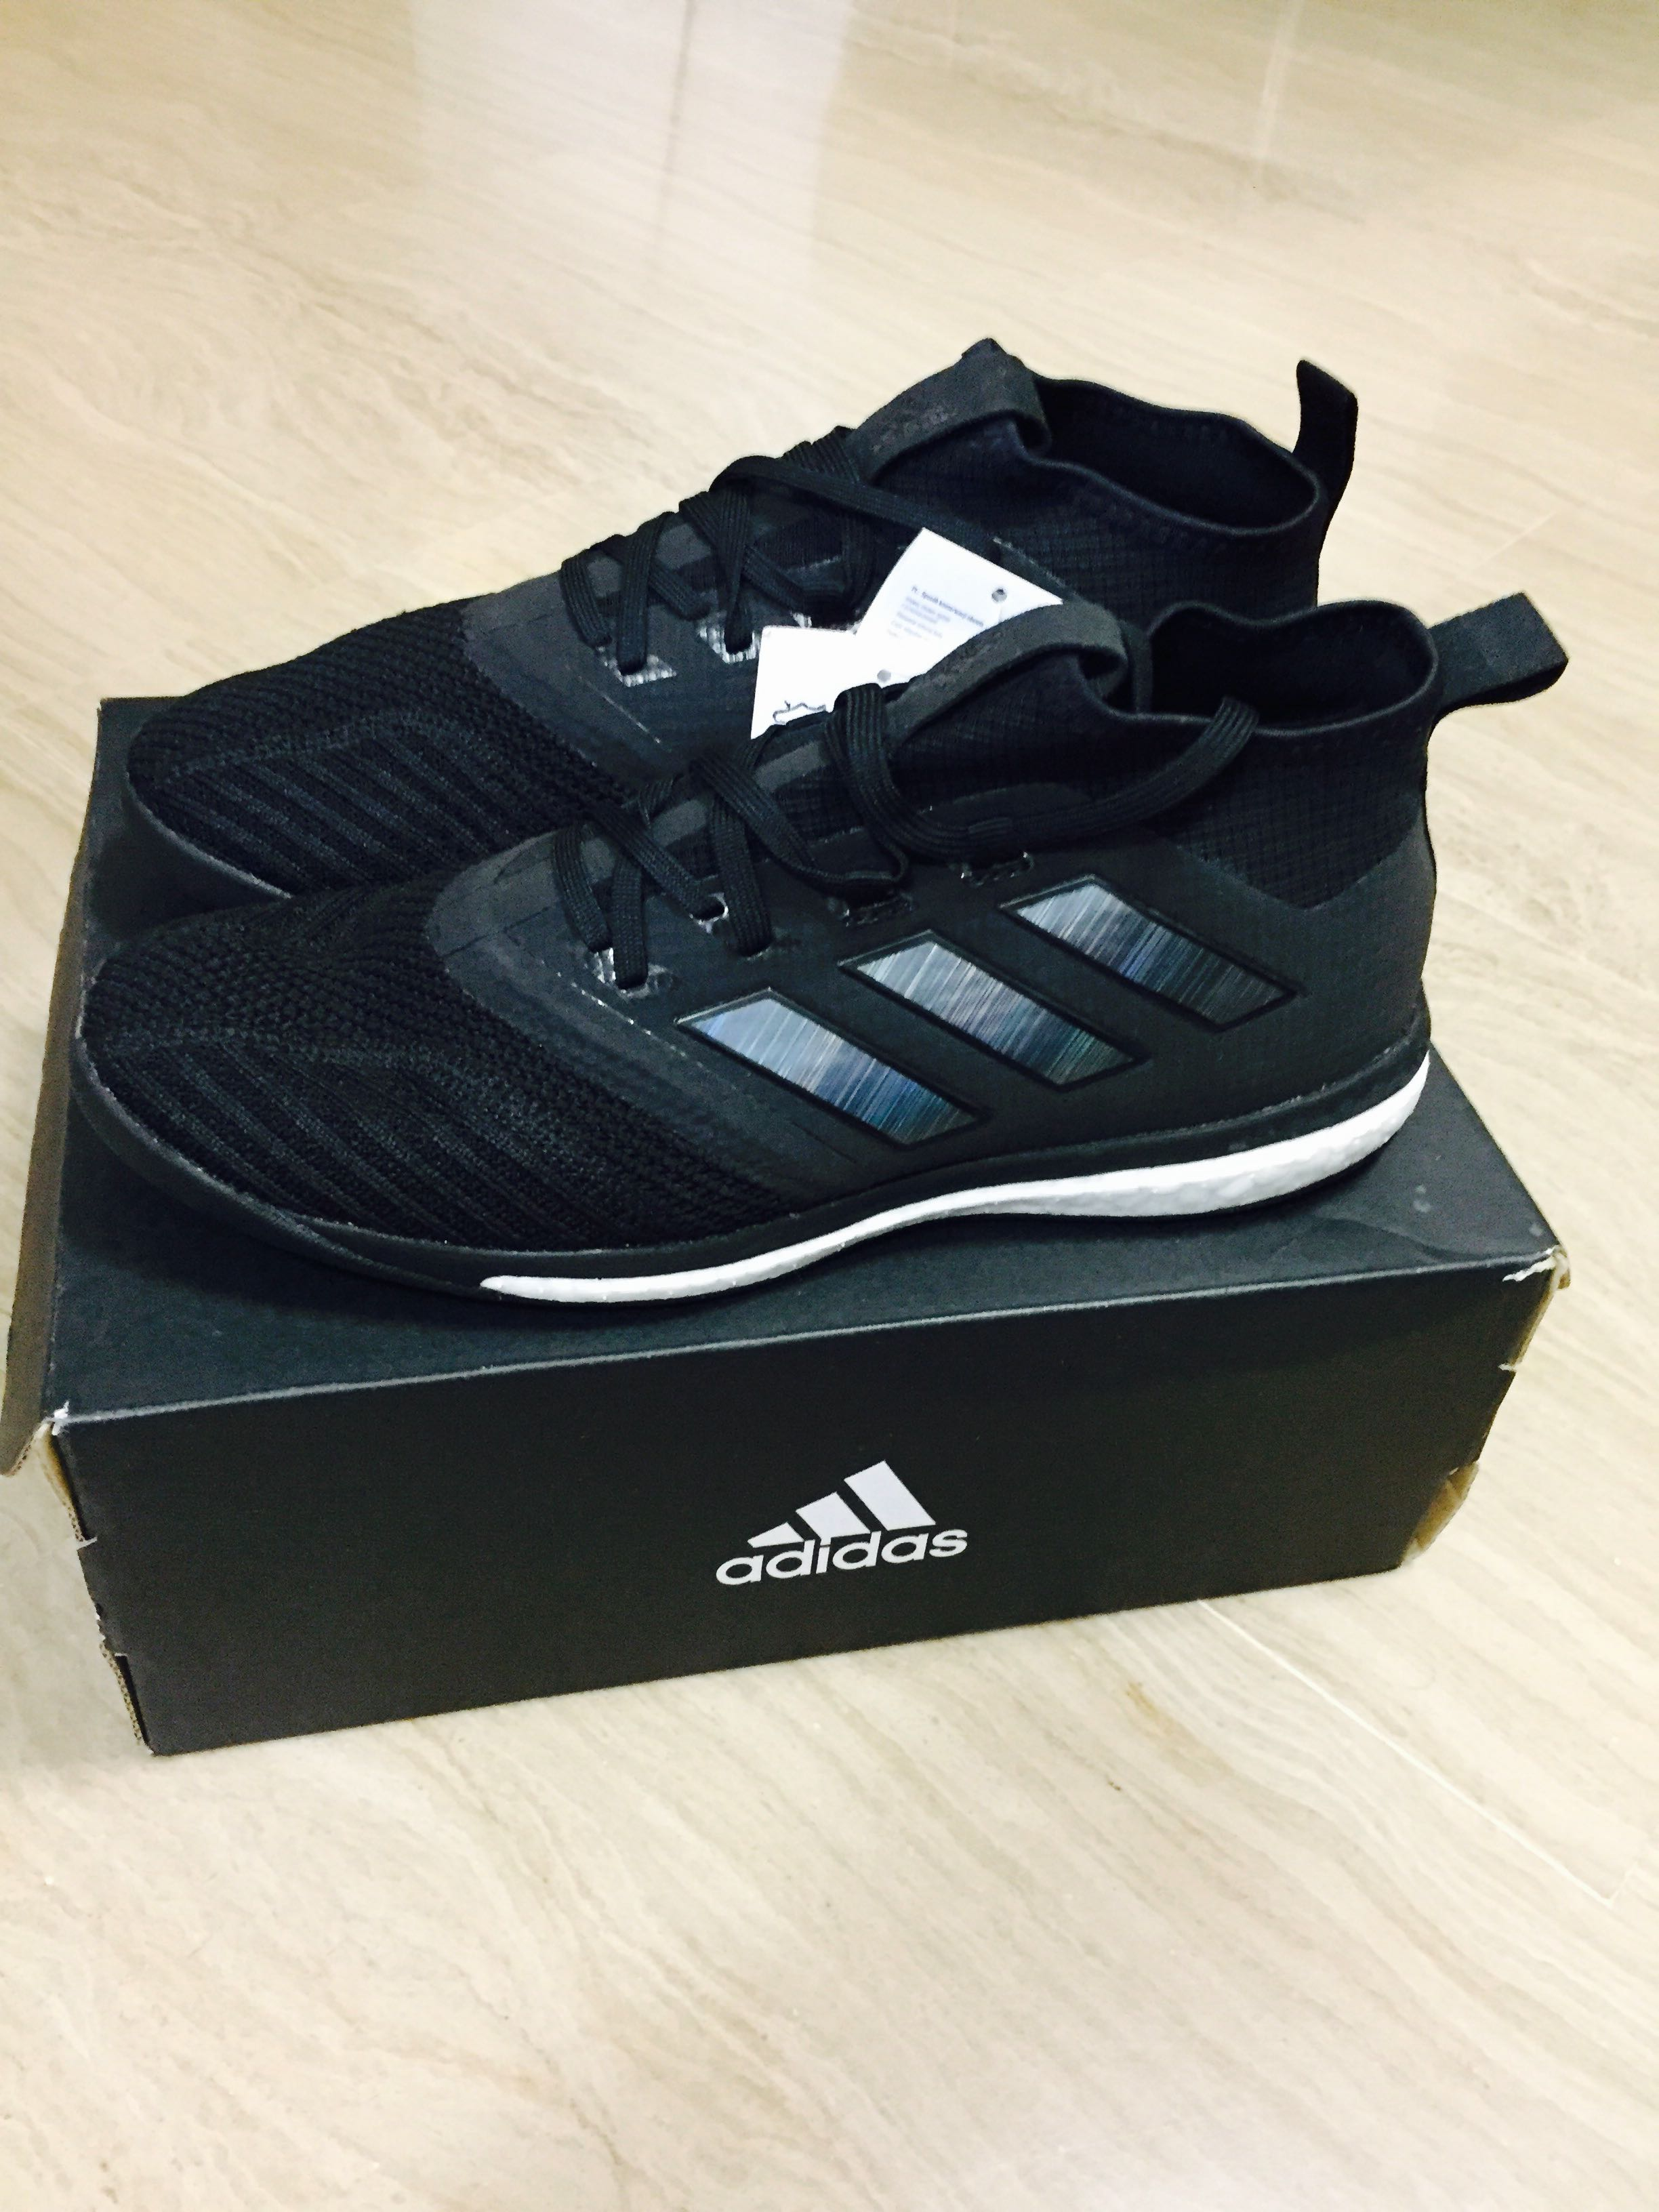 newest collection d8ff3 a2f8e Adidas Ace Tango 17.1 TR, Men's Fashion, Footwear on Carousell